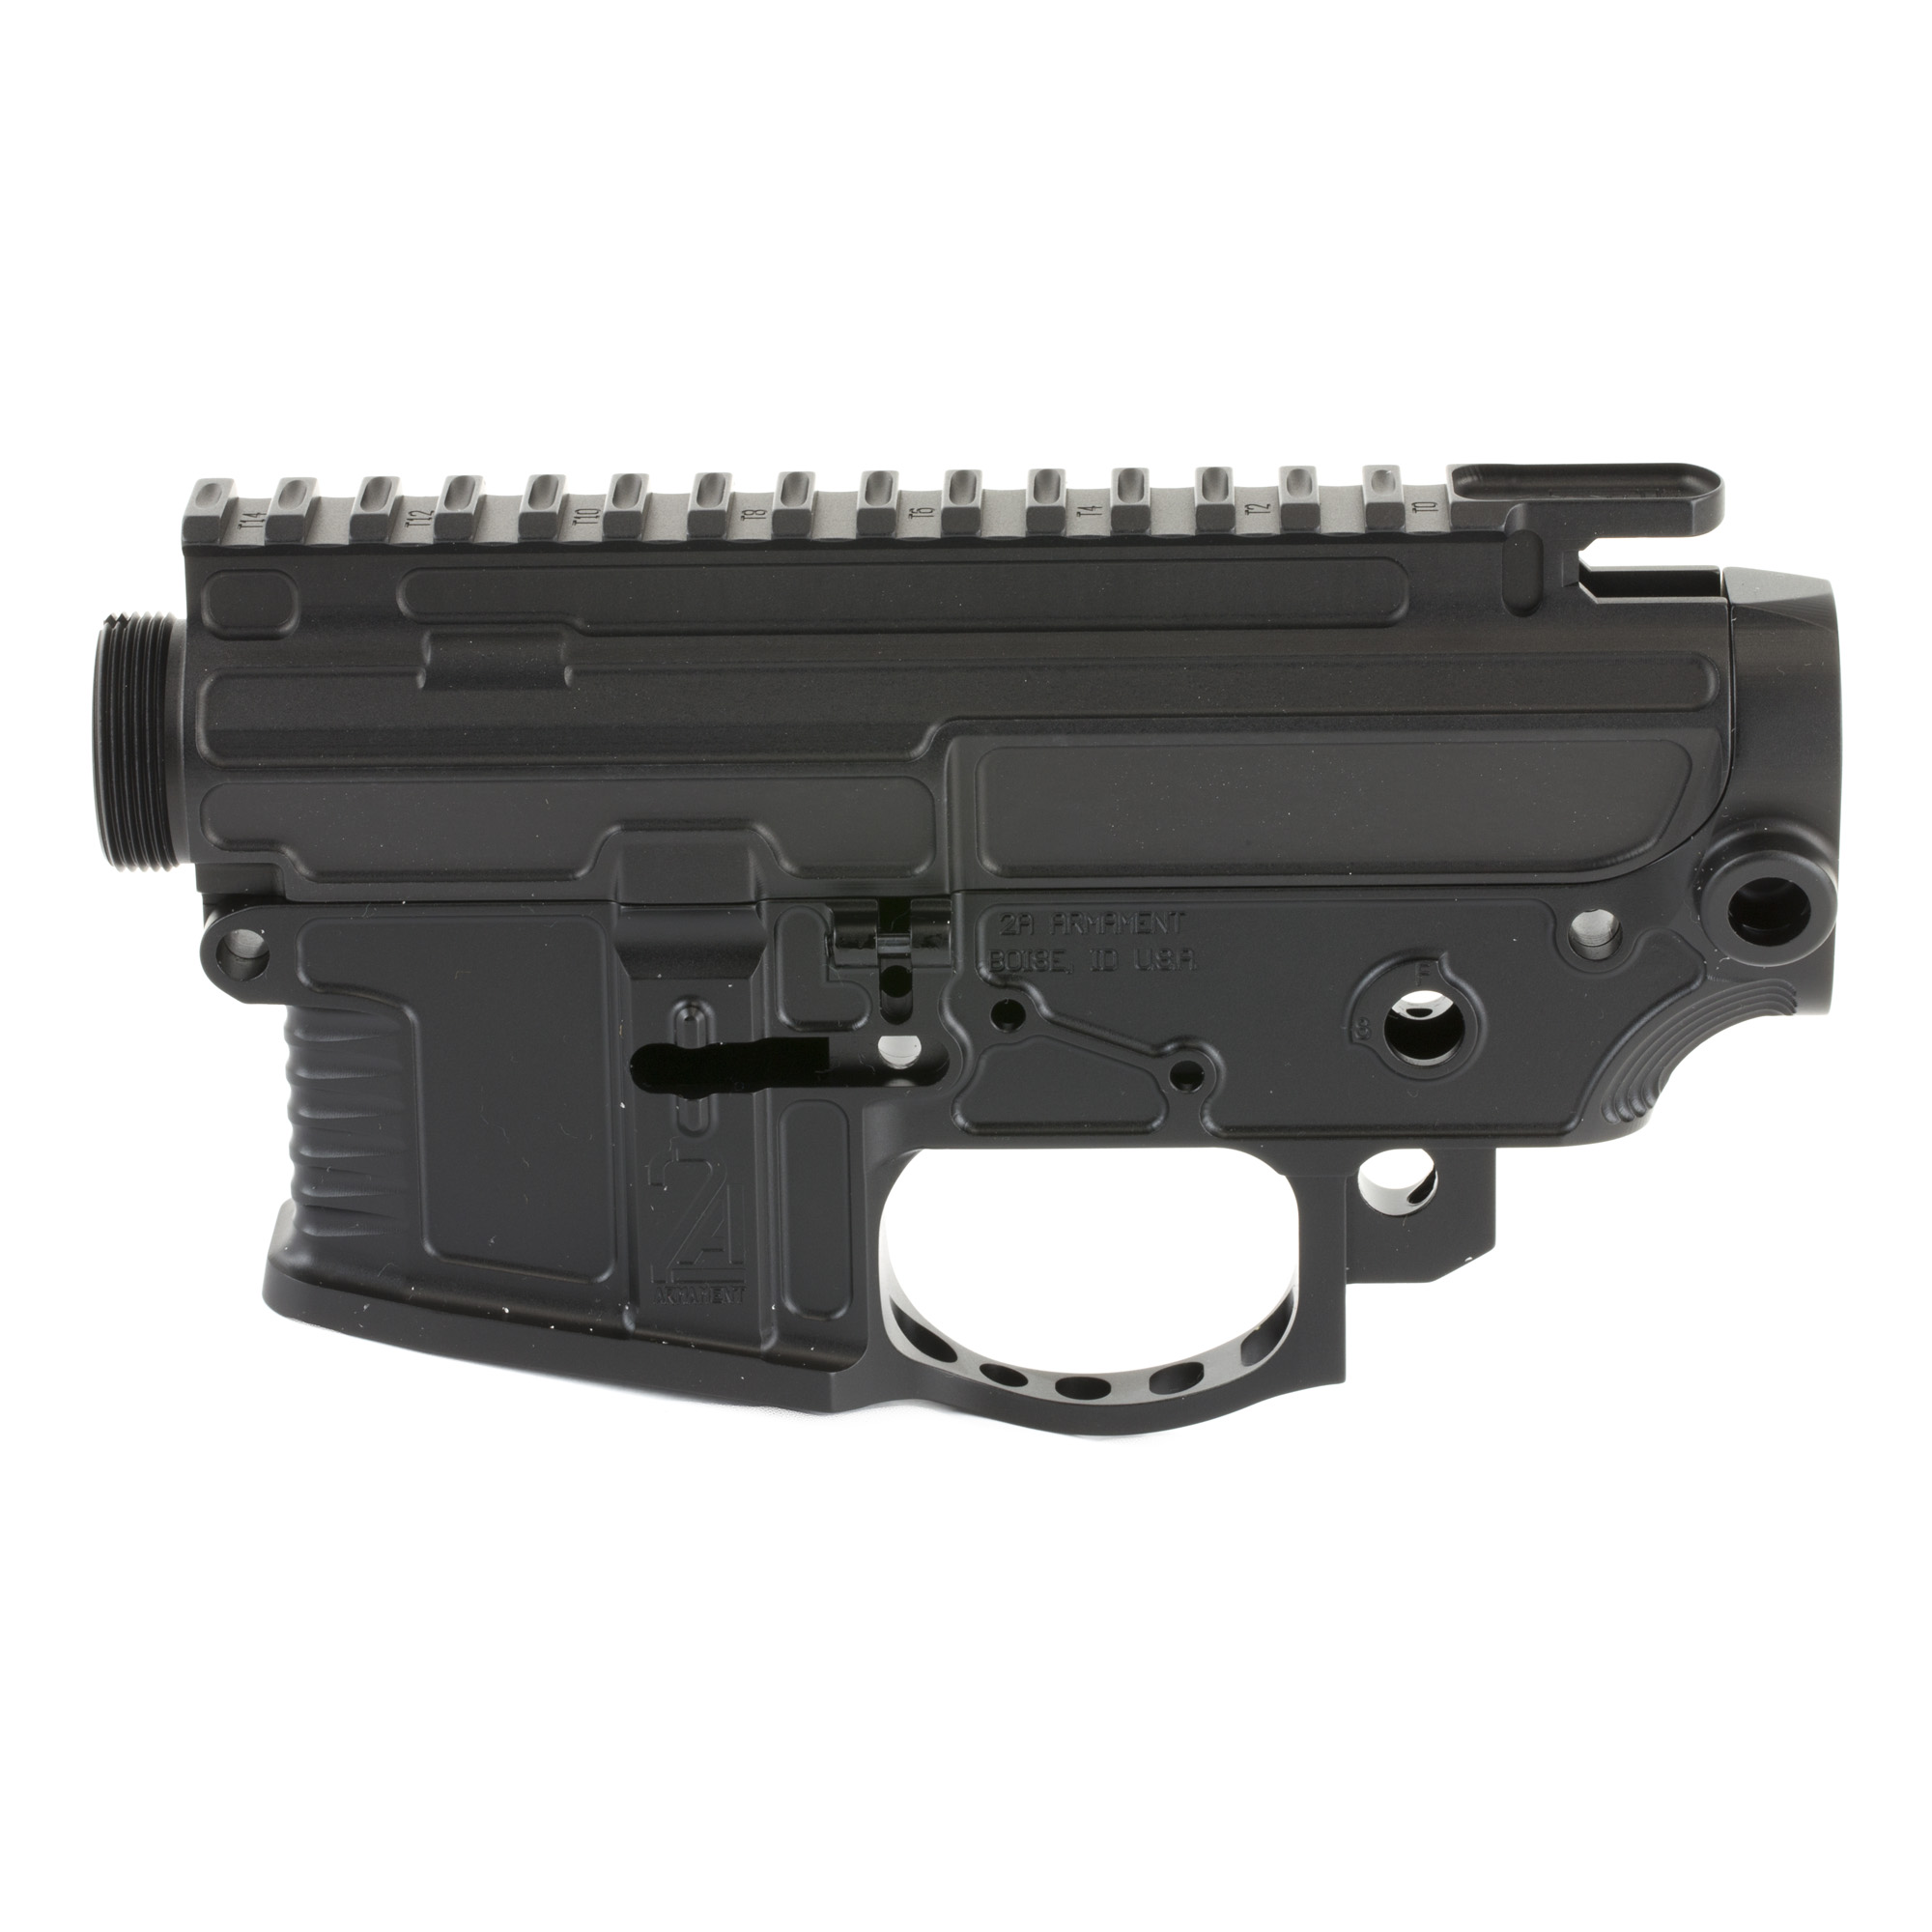 "2A-Armament is proud to introduce the Aethon billet upper and lower receiver set. The Aethon set incorporates a refreshed design on the mag well"" a ergonomically designed ridged tactile grip"" and integrated QD's into the receiver."